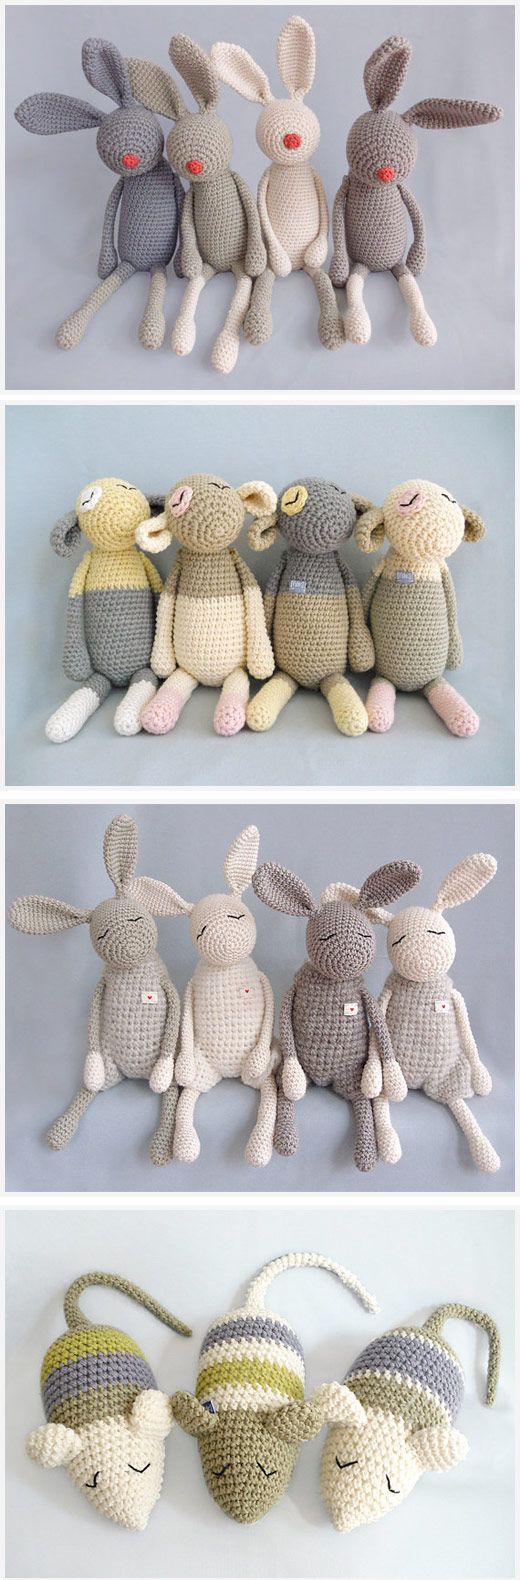 Cute Crocheted Creations by eineIdee - no pattern, just cuteness! super kawaii amigurumi bunnies mice, and sheep